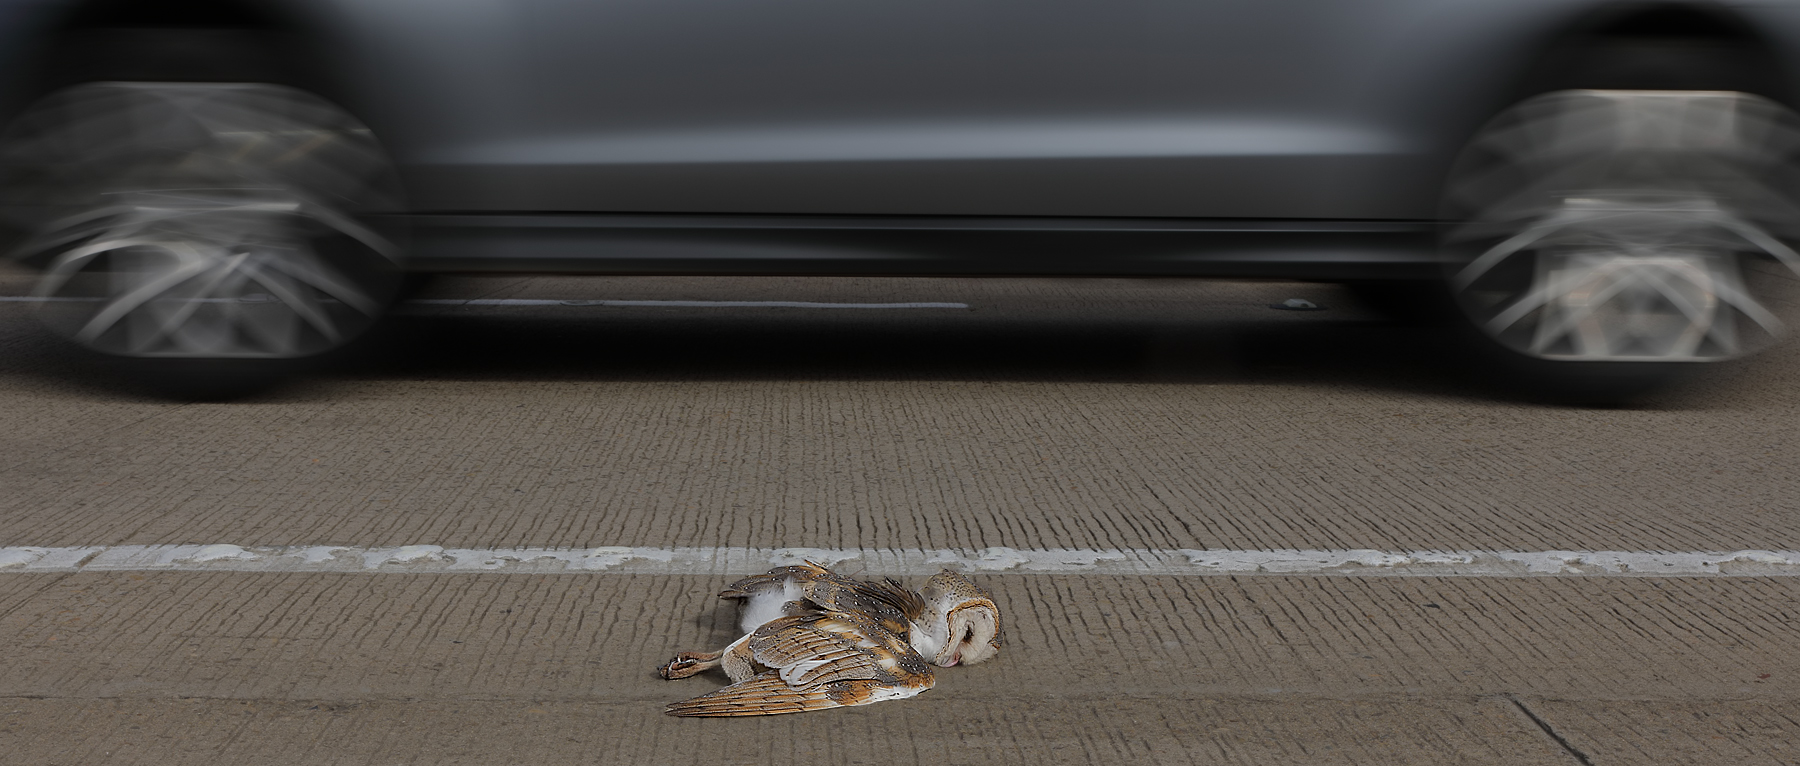 Road Kill by Con Boekel